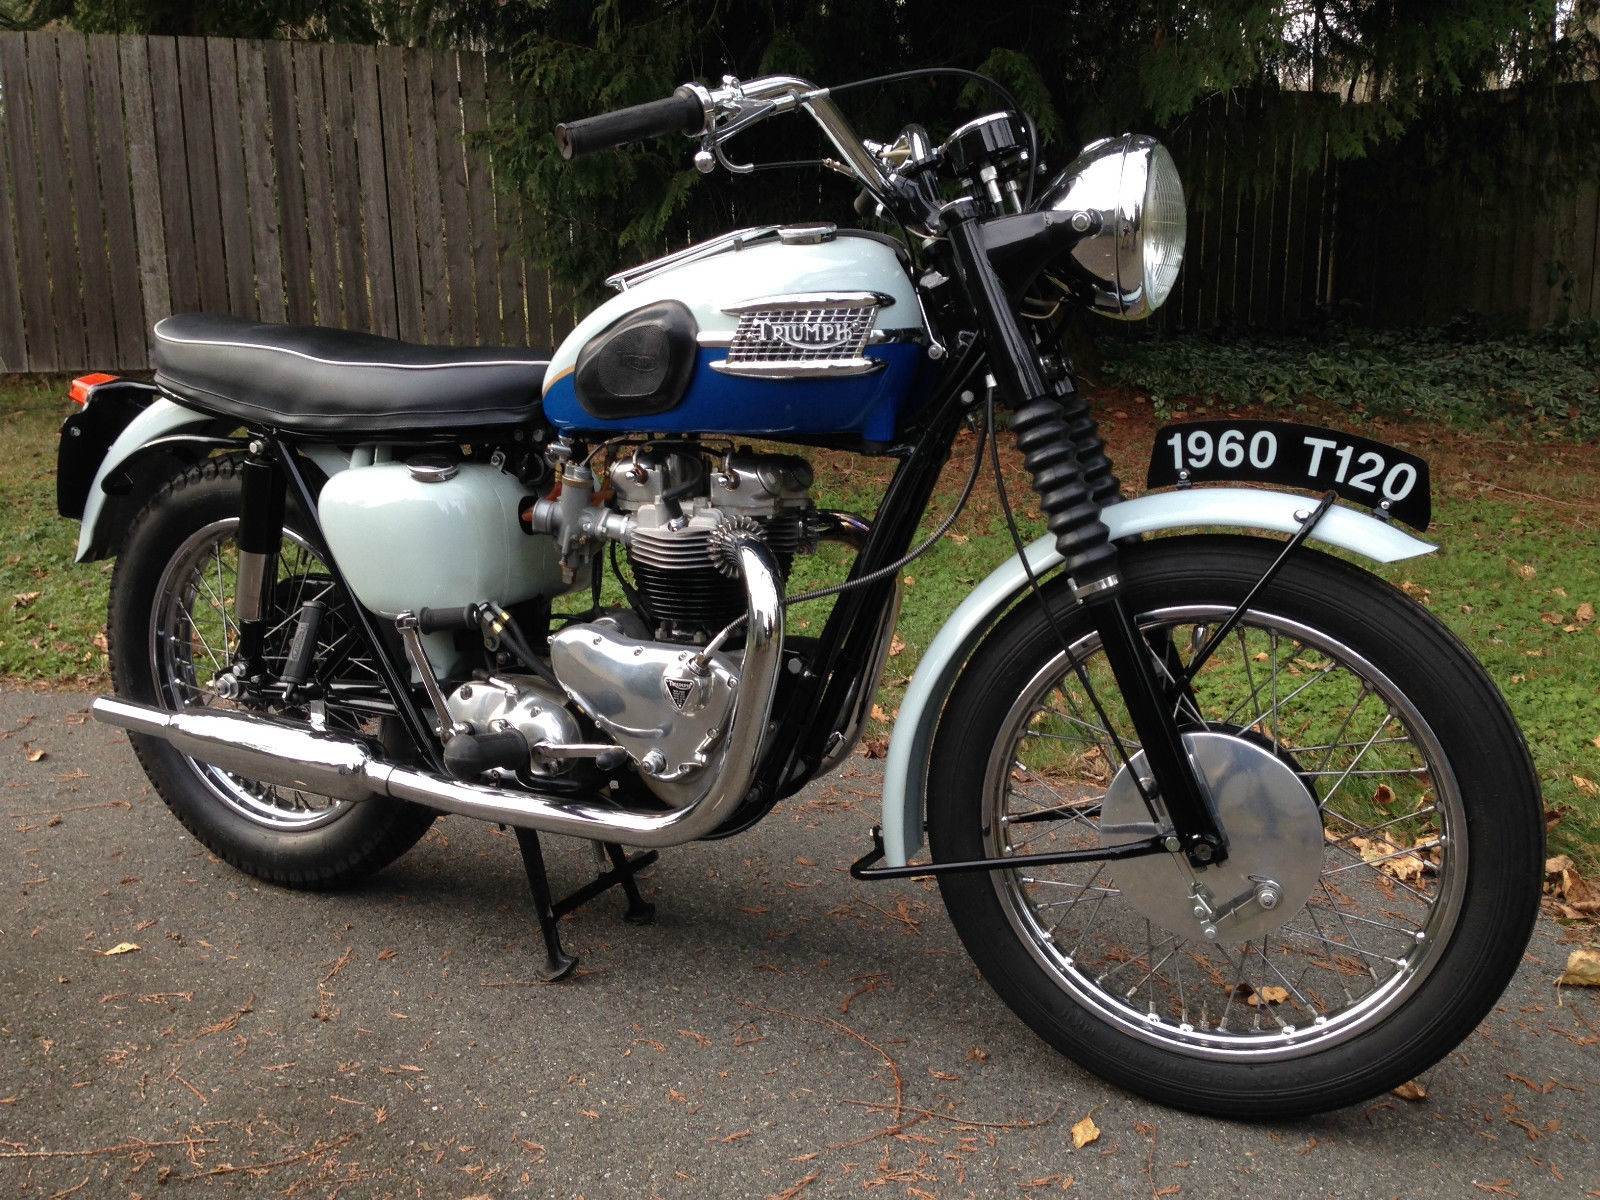 Triumph Bonneville T120 - 1960 - Exhaust, Front Forks, Side Panel and Frame.